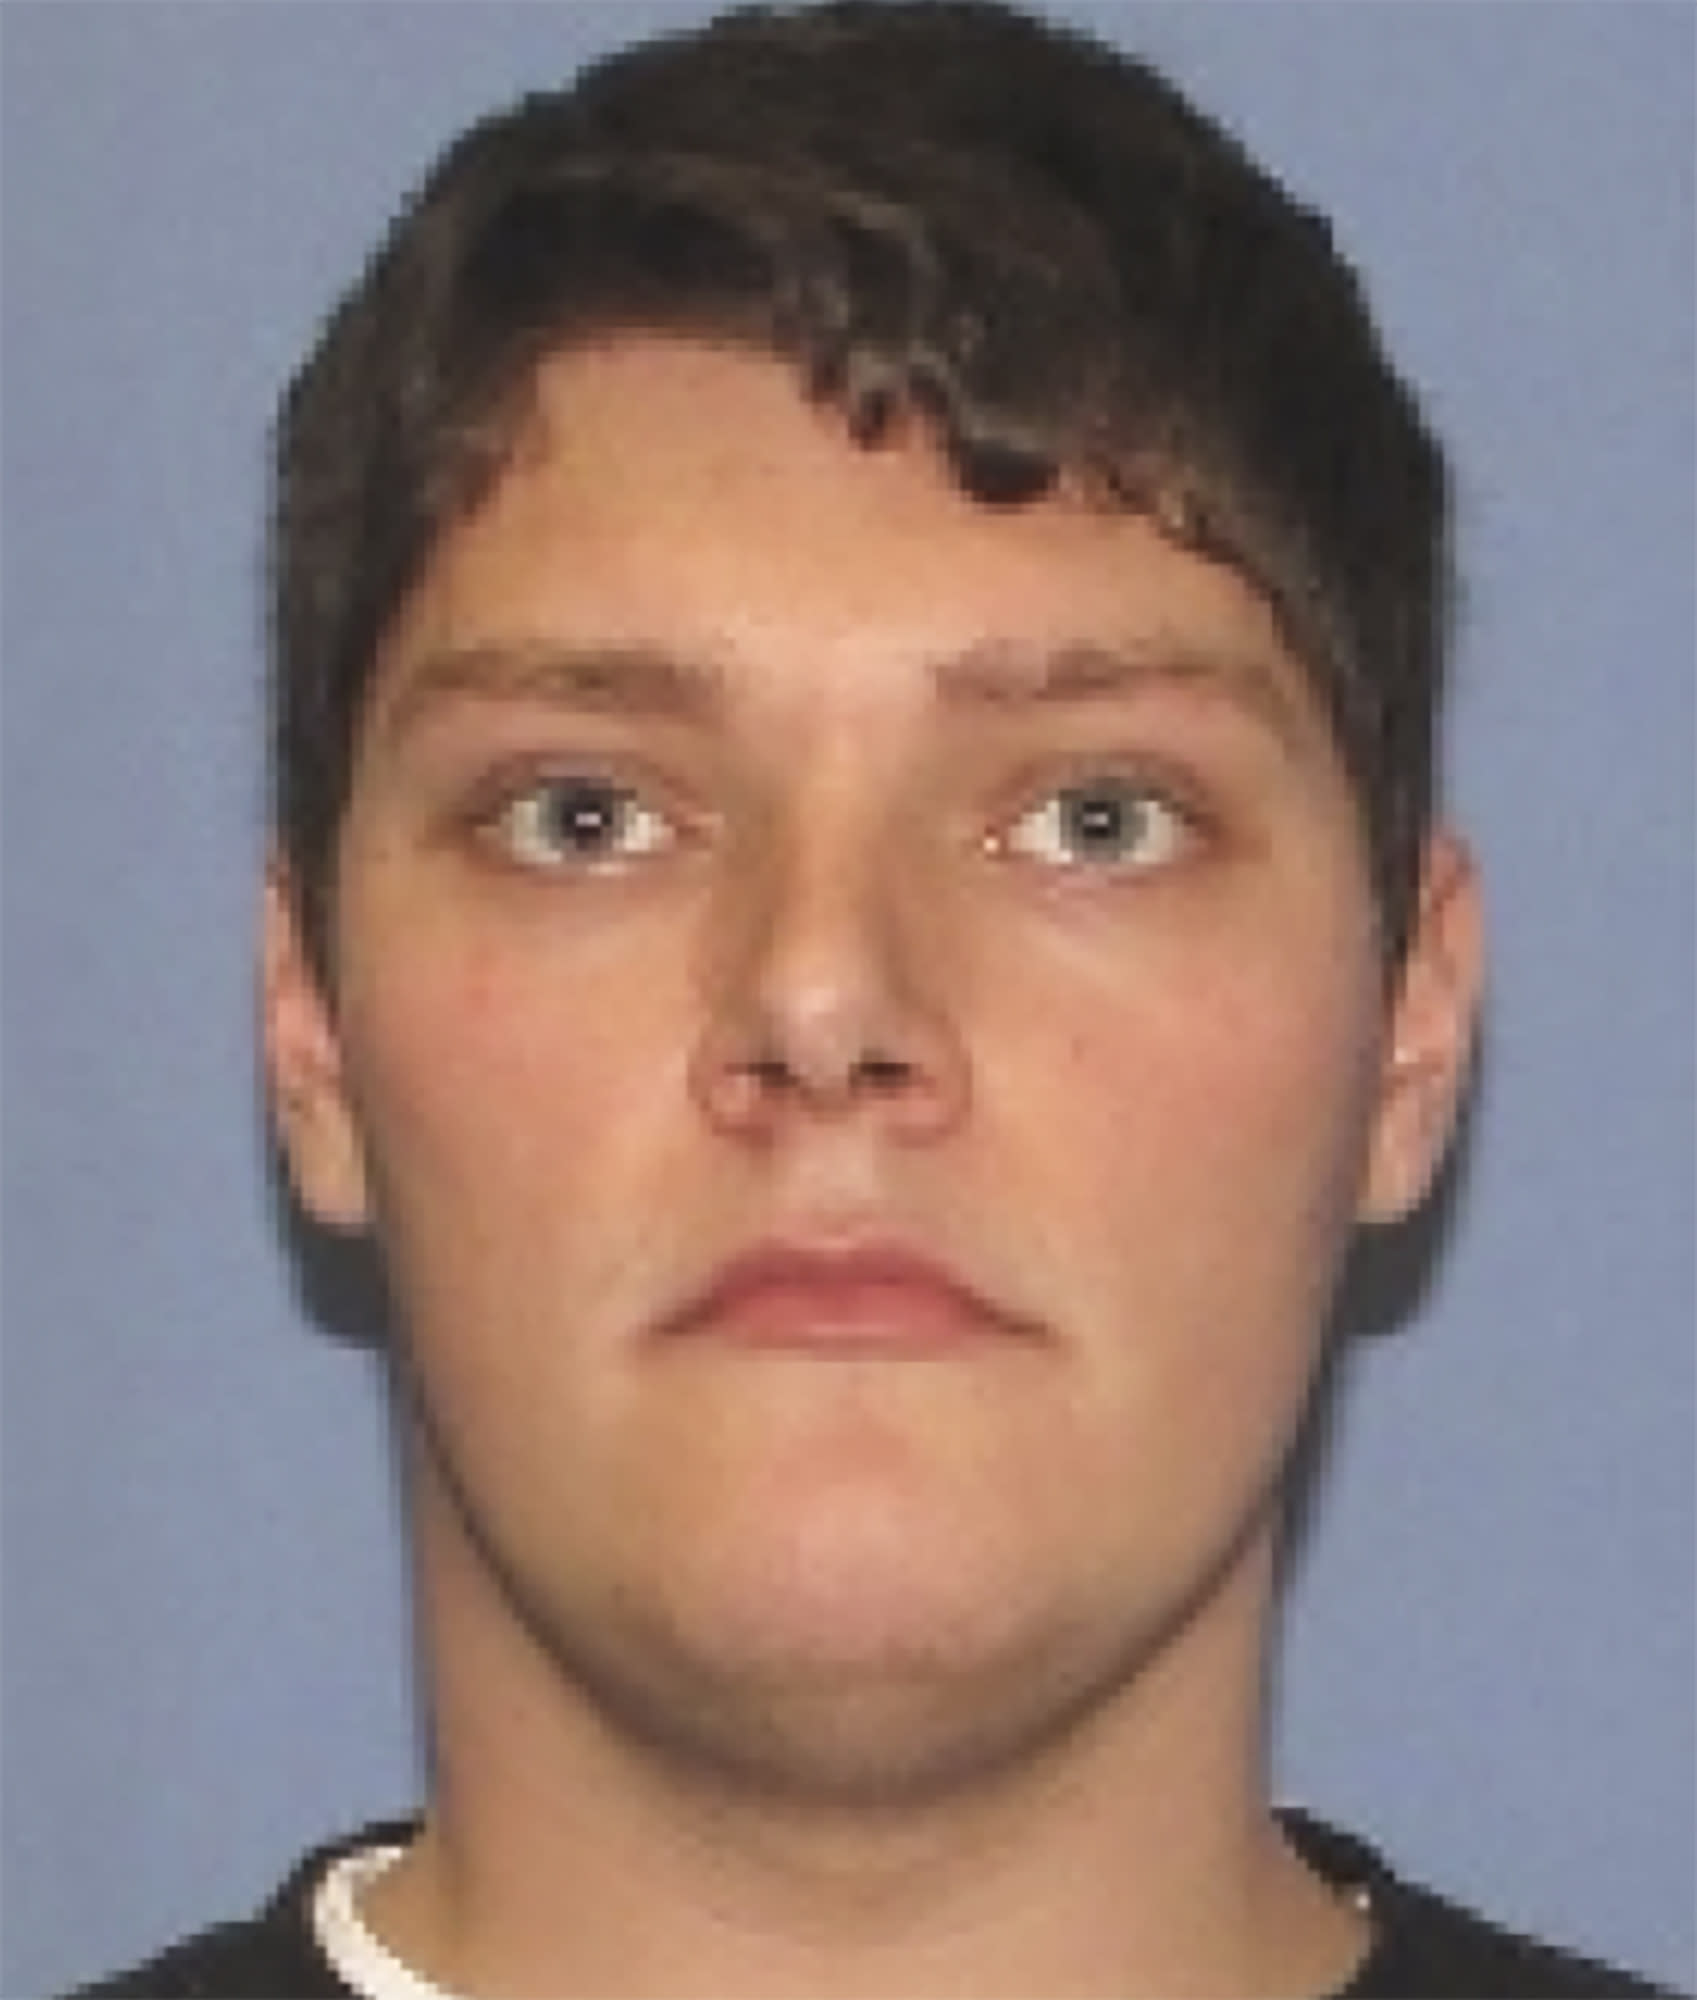 Dayton Police Department shows Connor Betts. The 24-year-old masked gunman in body armor opened fire early Sunday Aug. 4 2019 in a popular entertainment district in Dayton Ohio killing several people including his